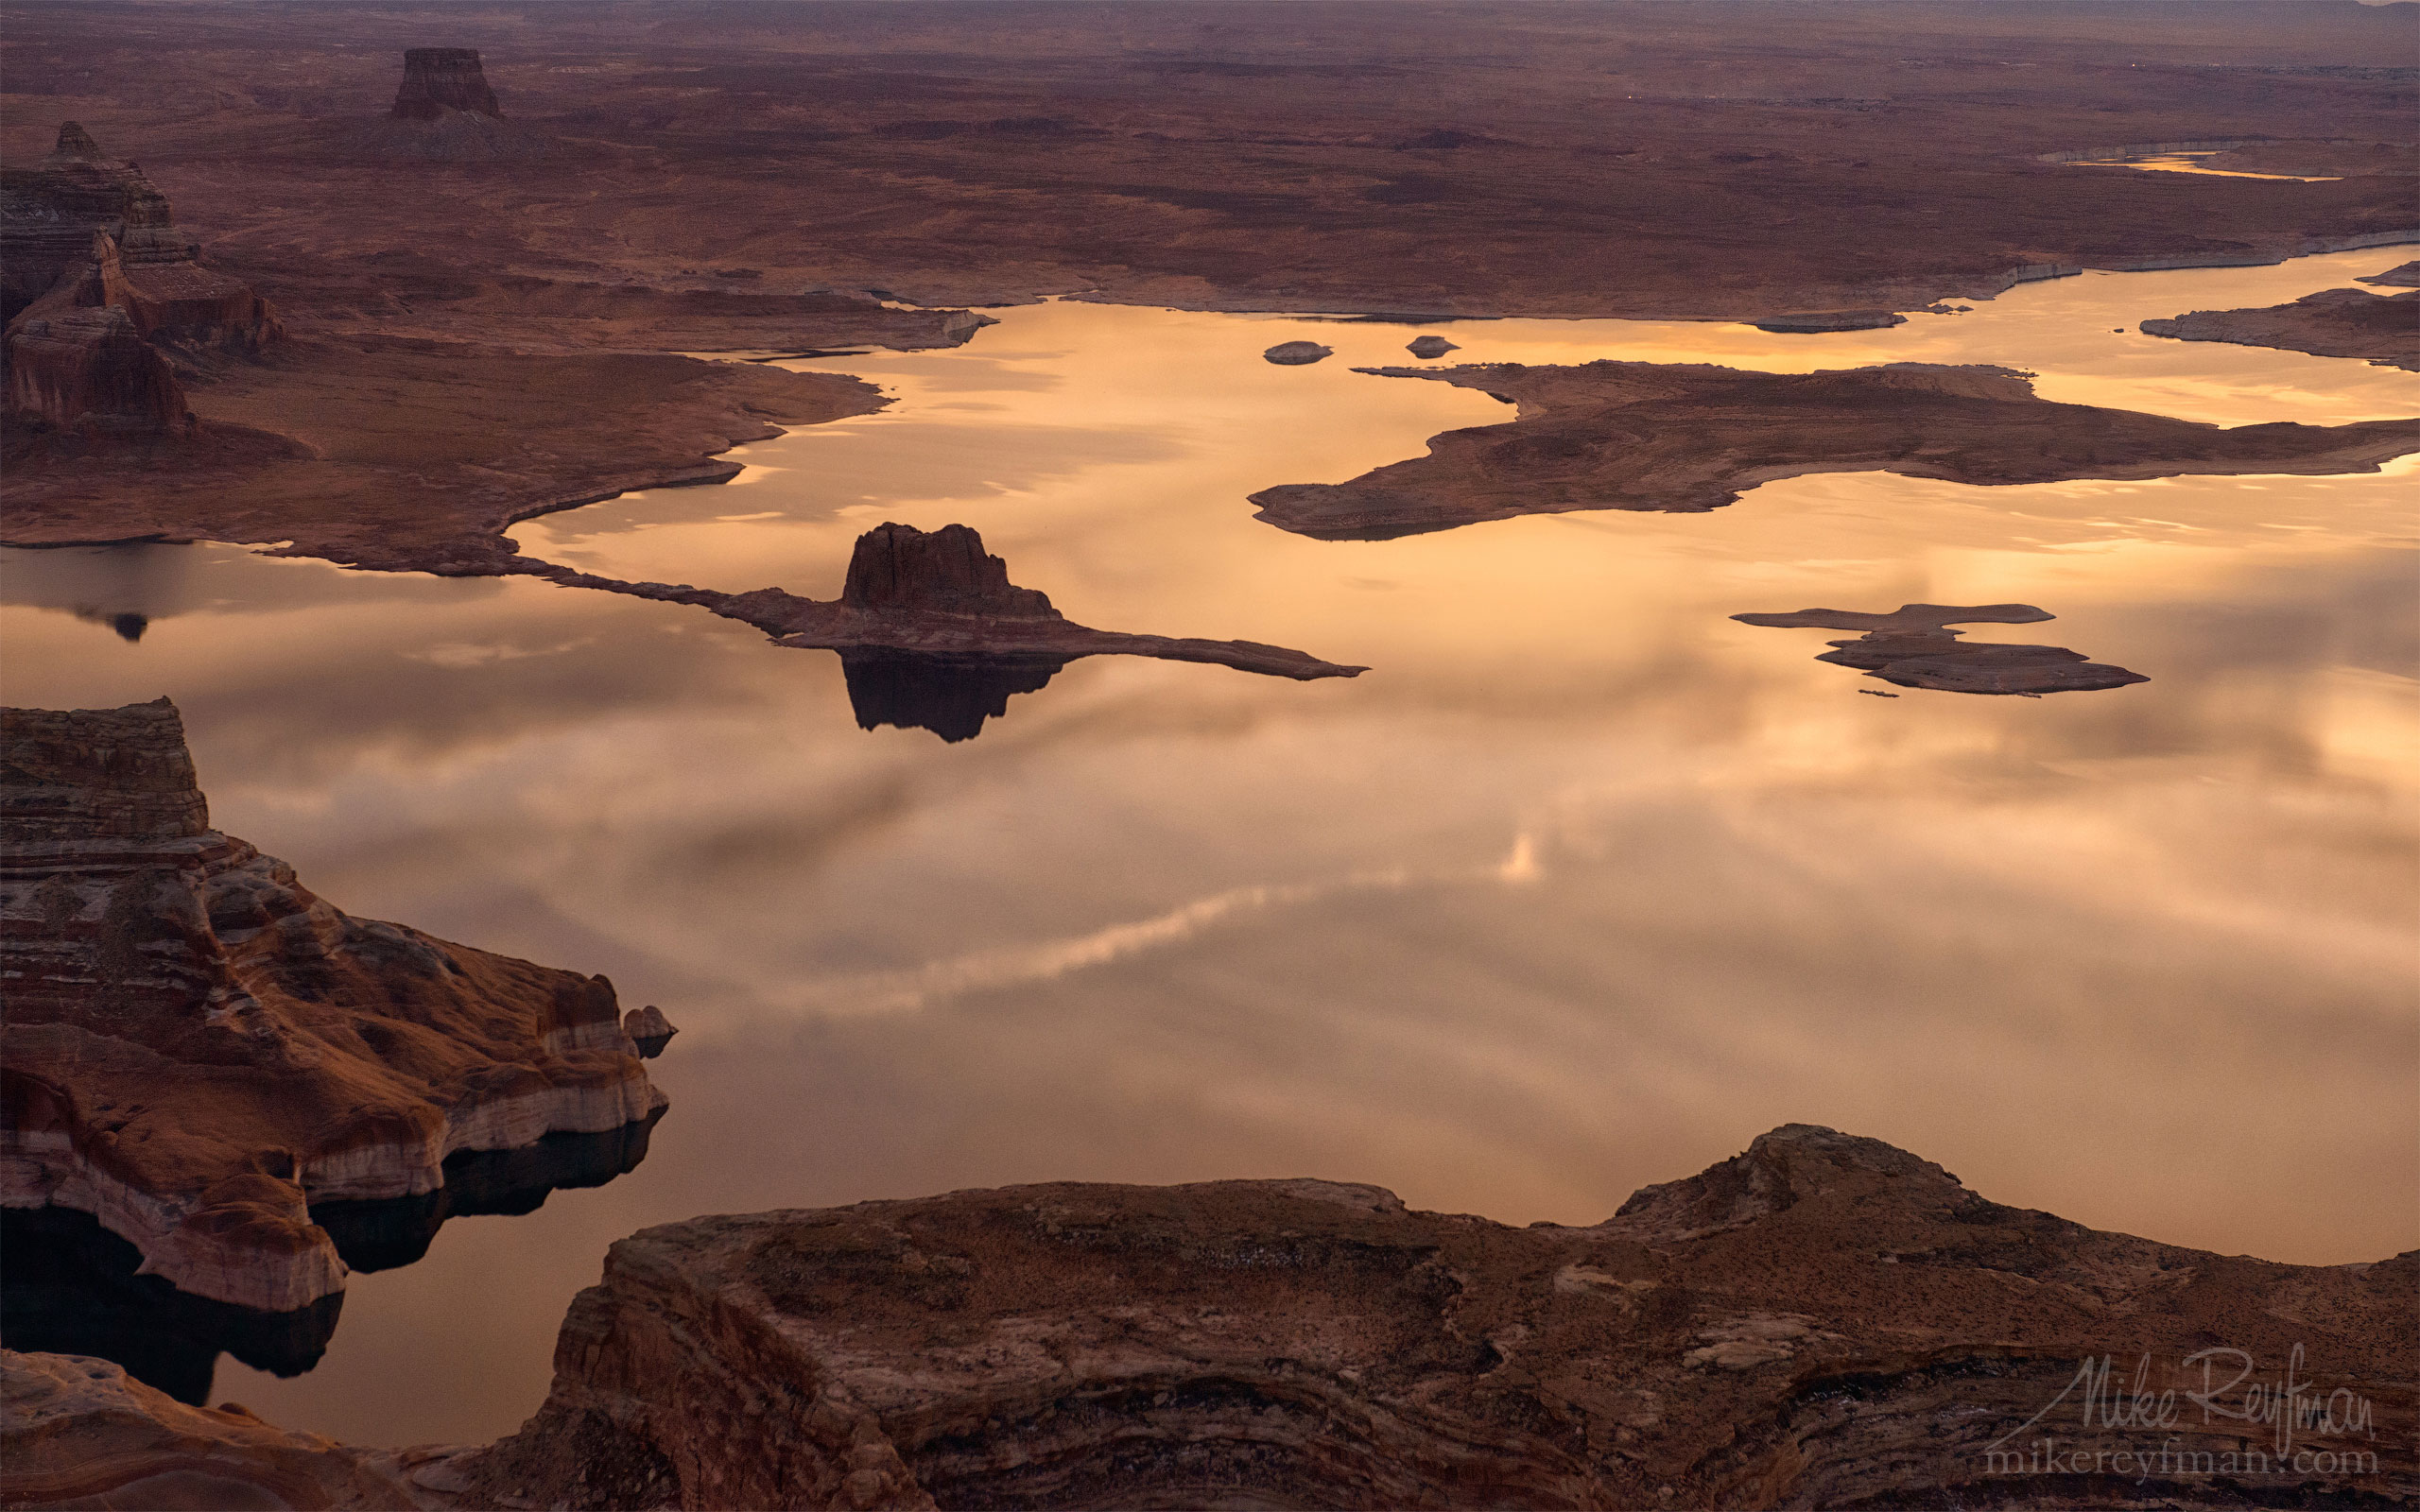 Padre Butte. Glen Canyon NRA, Lake Powell, Utah/Arizona, USA. Aerial 046-LP3_D8C9693.jpg - Lake Powell, Glen Canyon NAR. Colorado and Sun Juan Rivers. Utah/Arizona, USA  - Mike Reyfman Photography